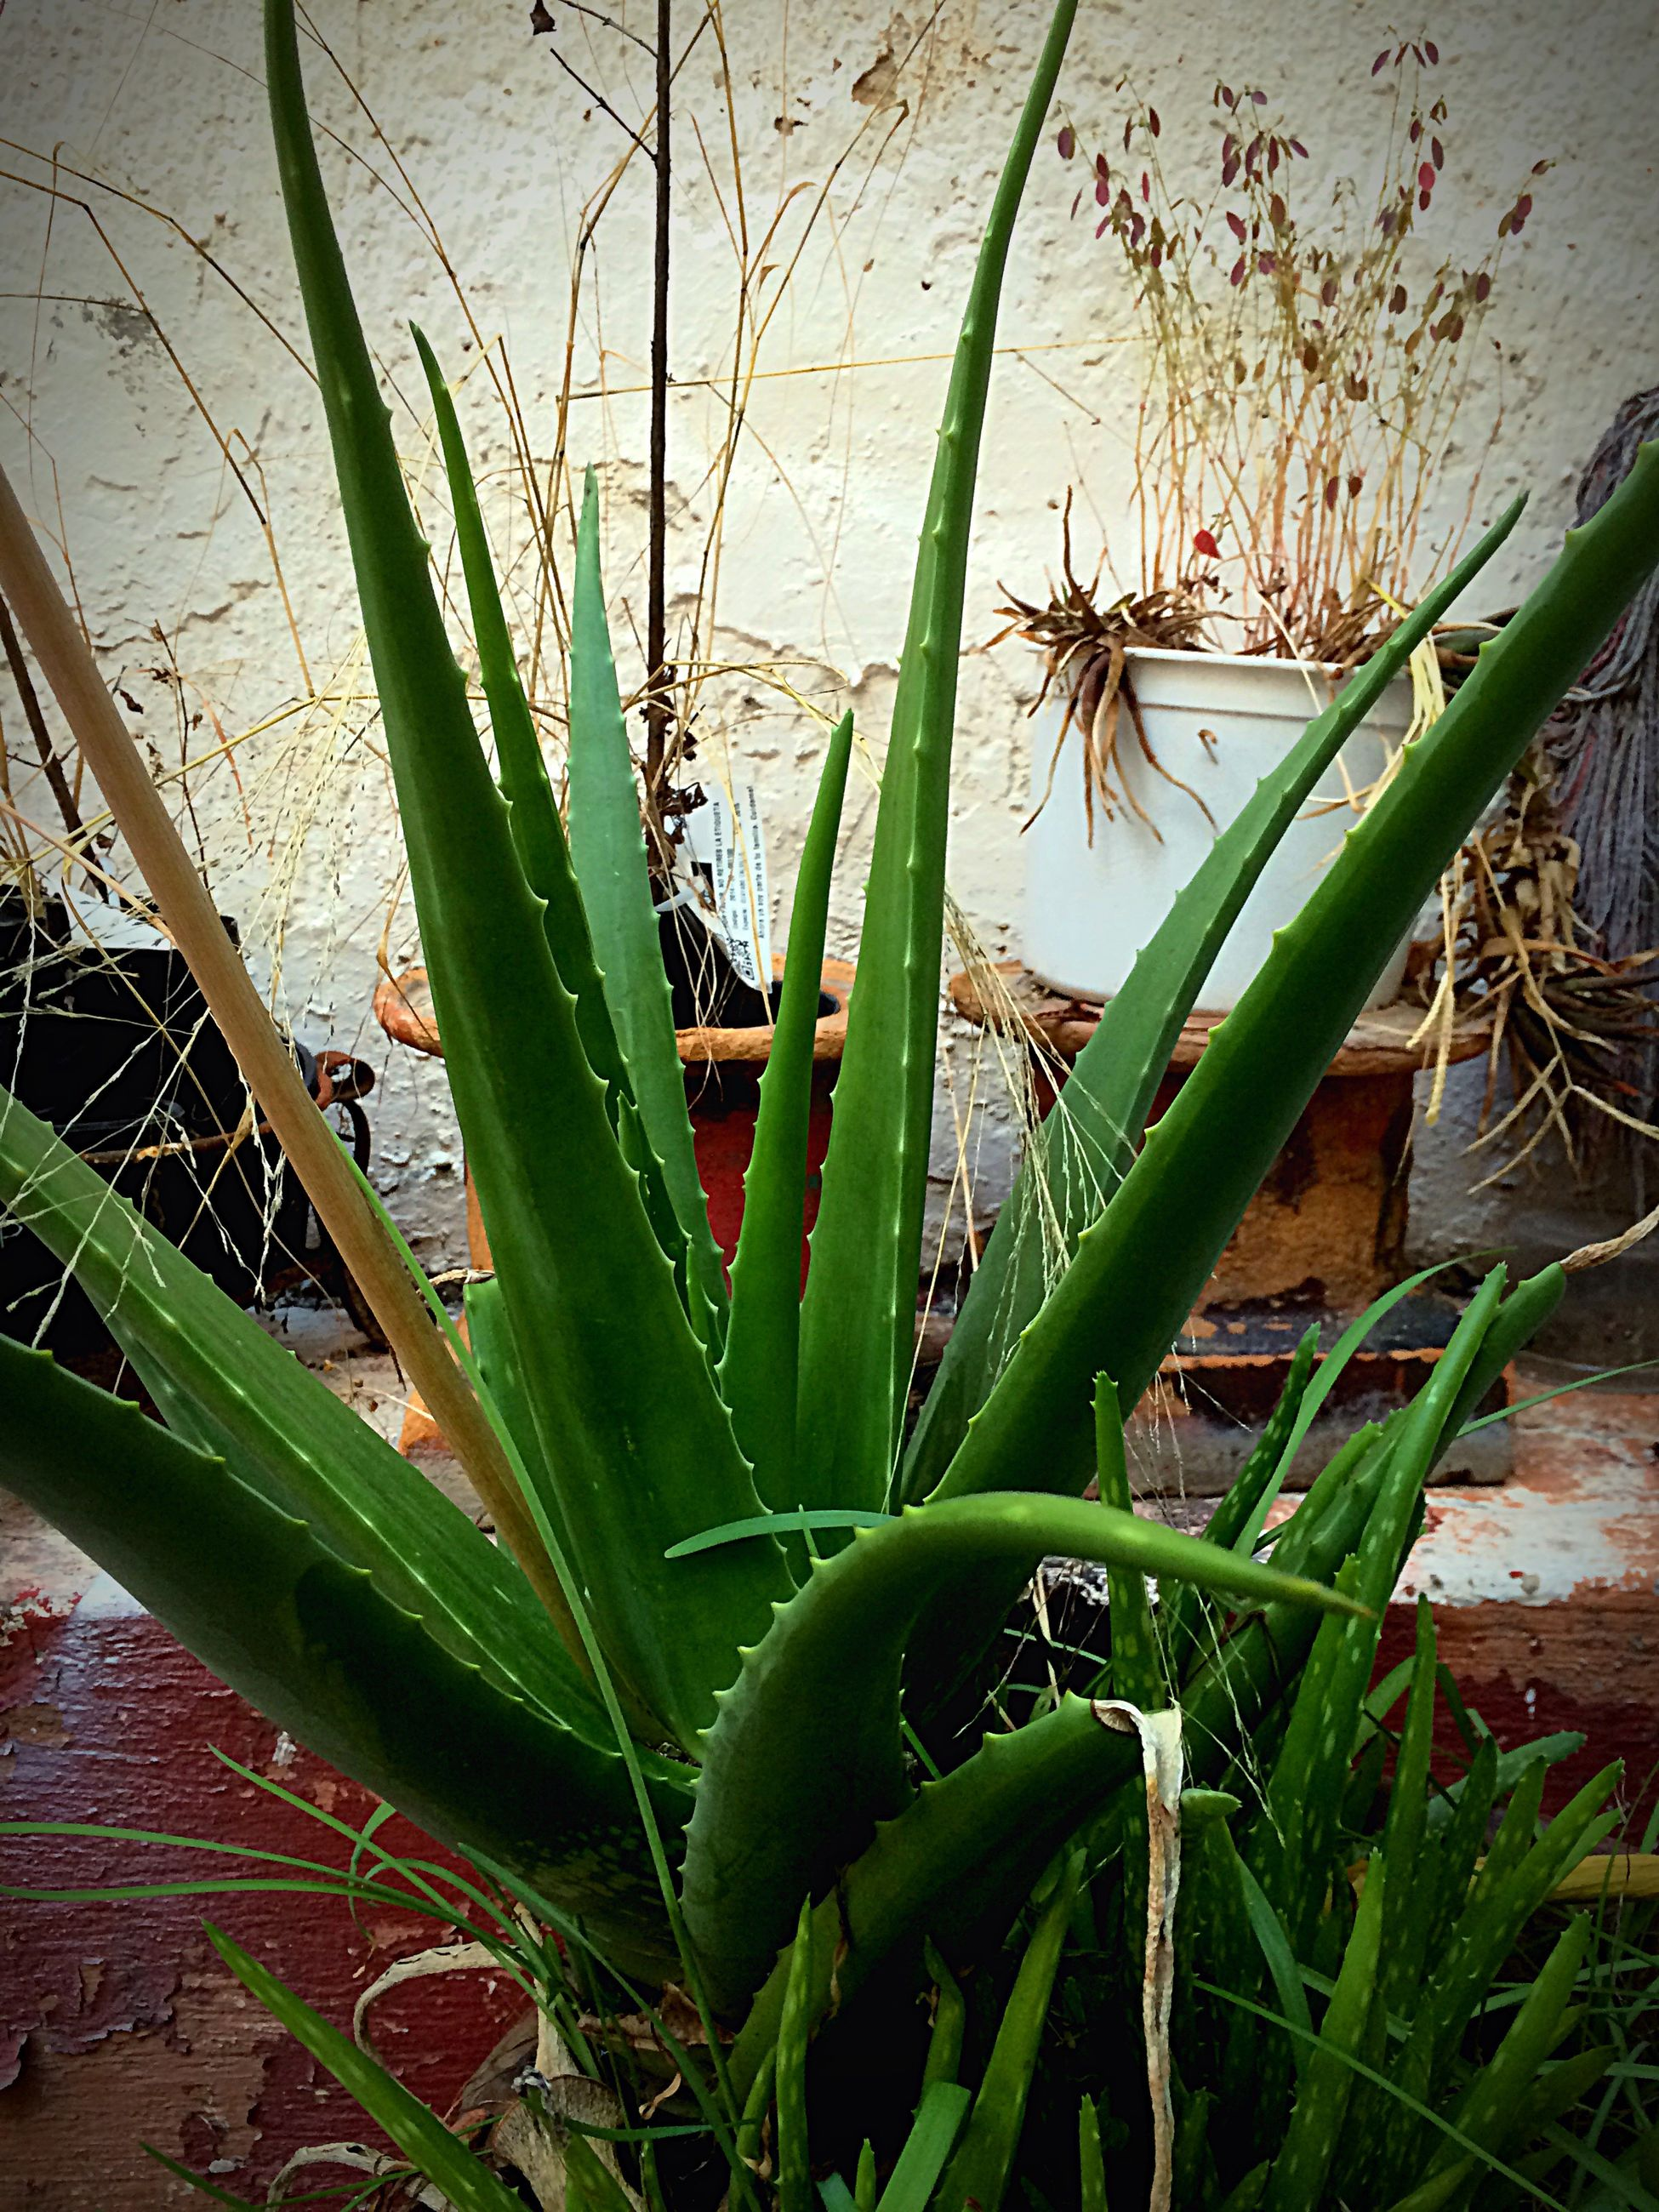 plant, growth, aloe, succulent plant, nature, no people, outdoors, cactus, close-up, day